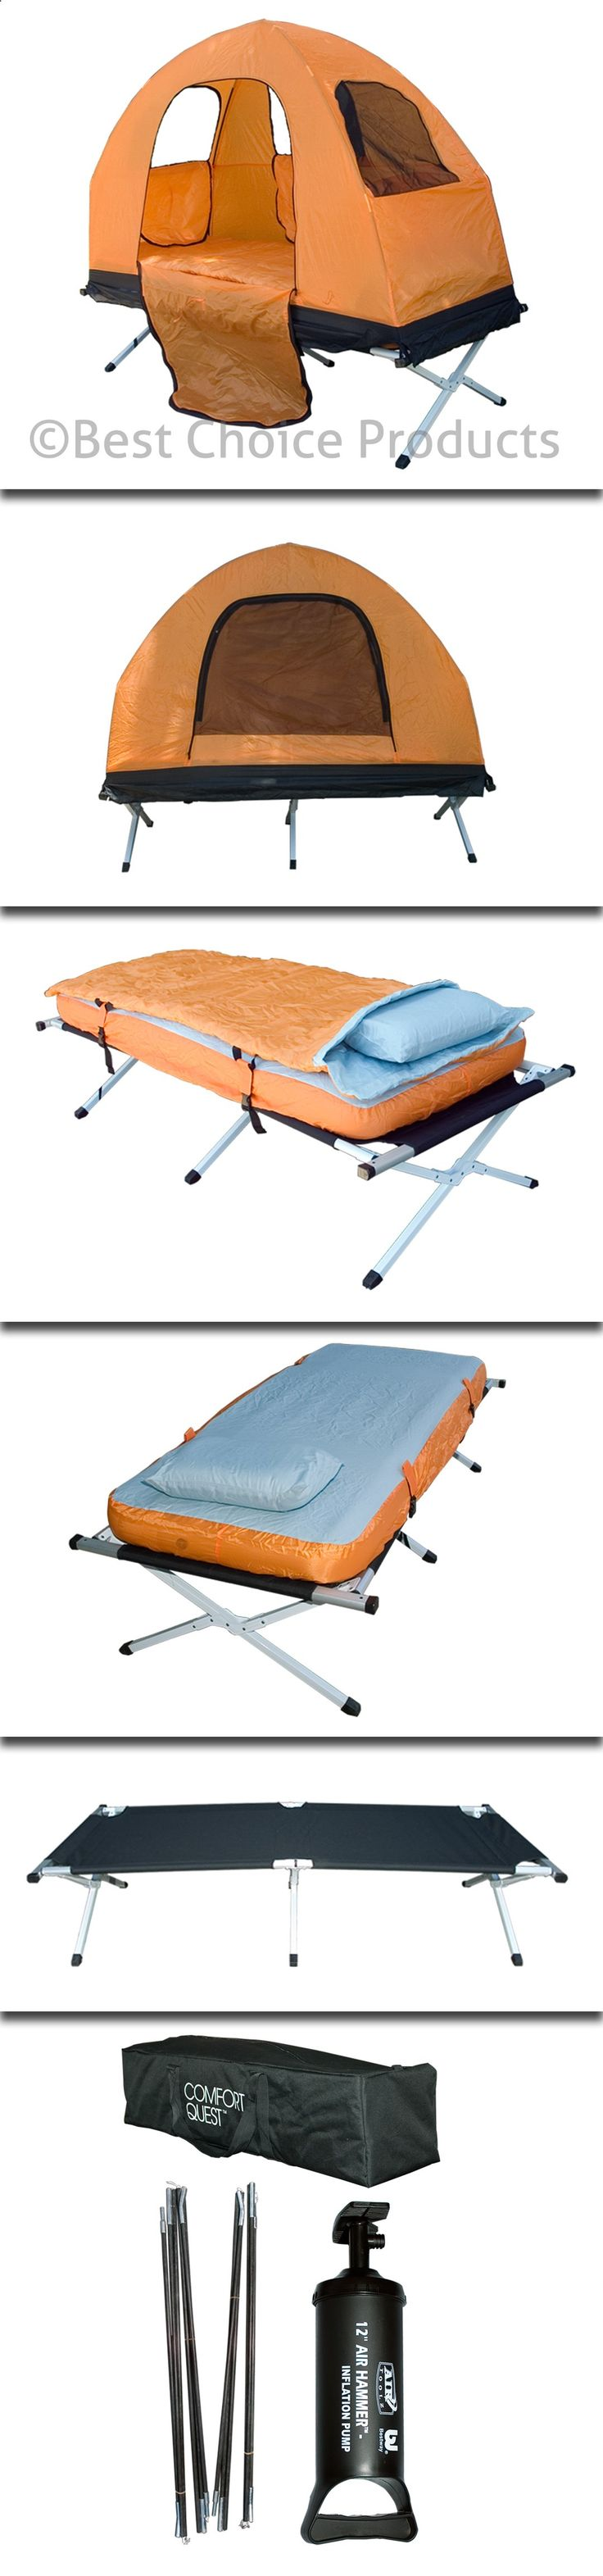 Best 25+ Tent camping beds ideas on Pinterest | Camping beds, Beds ...